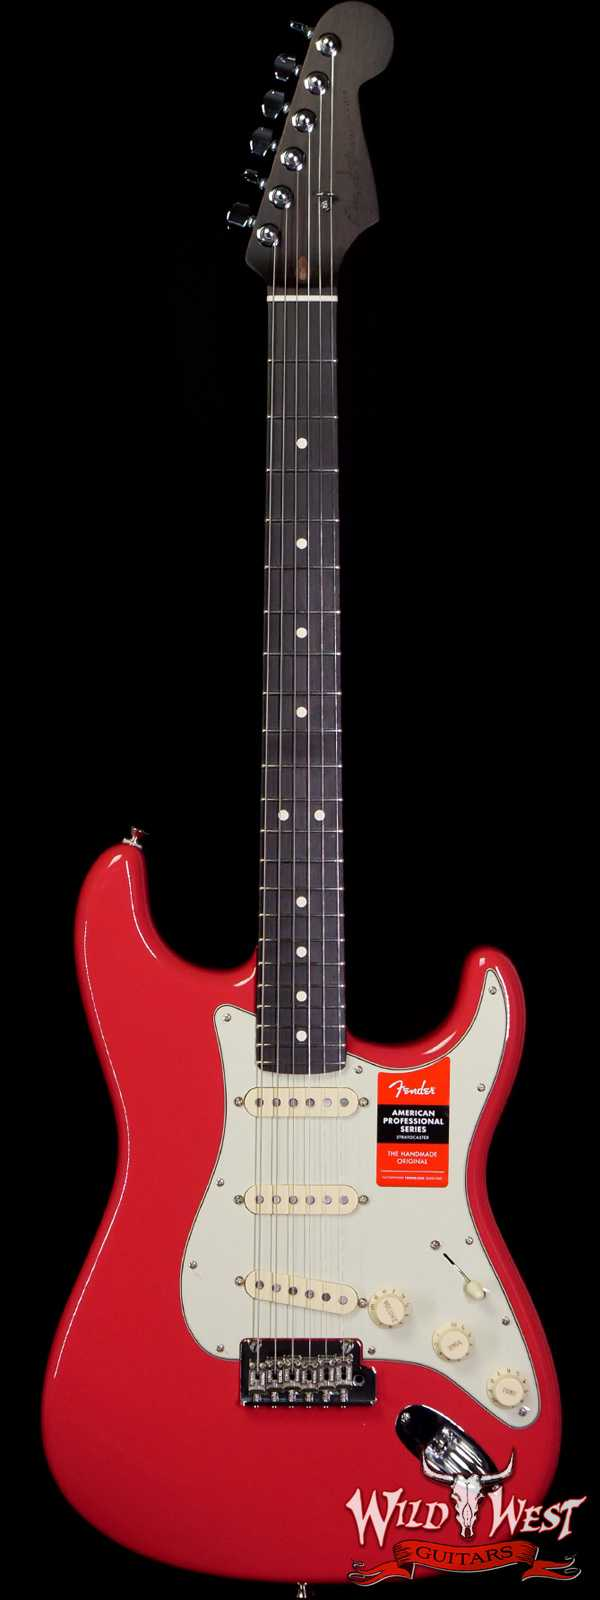 Fender USA Limited Edition American Professional Stratocaster Solid Rosewood Neck Fiesta Red